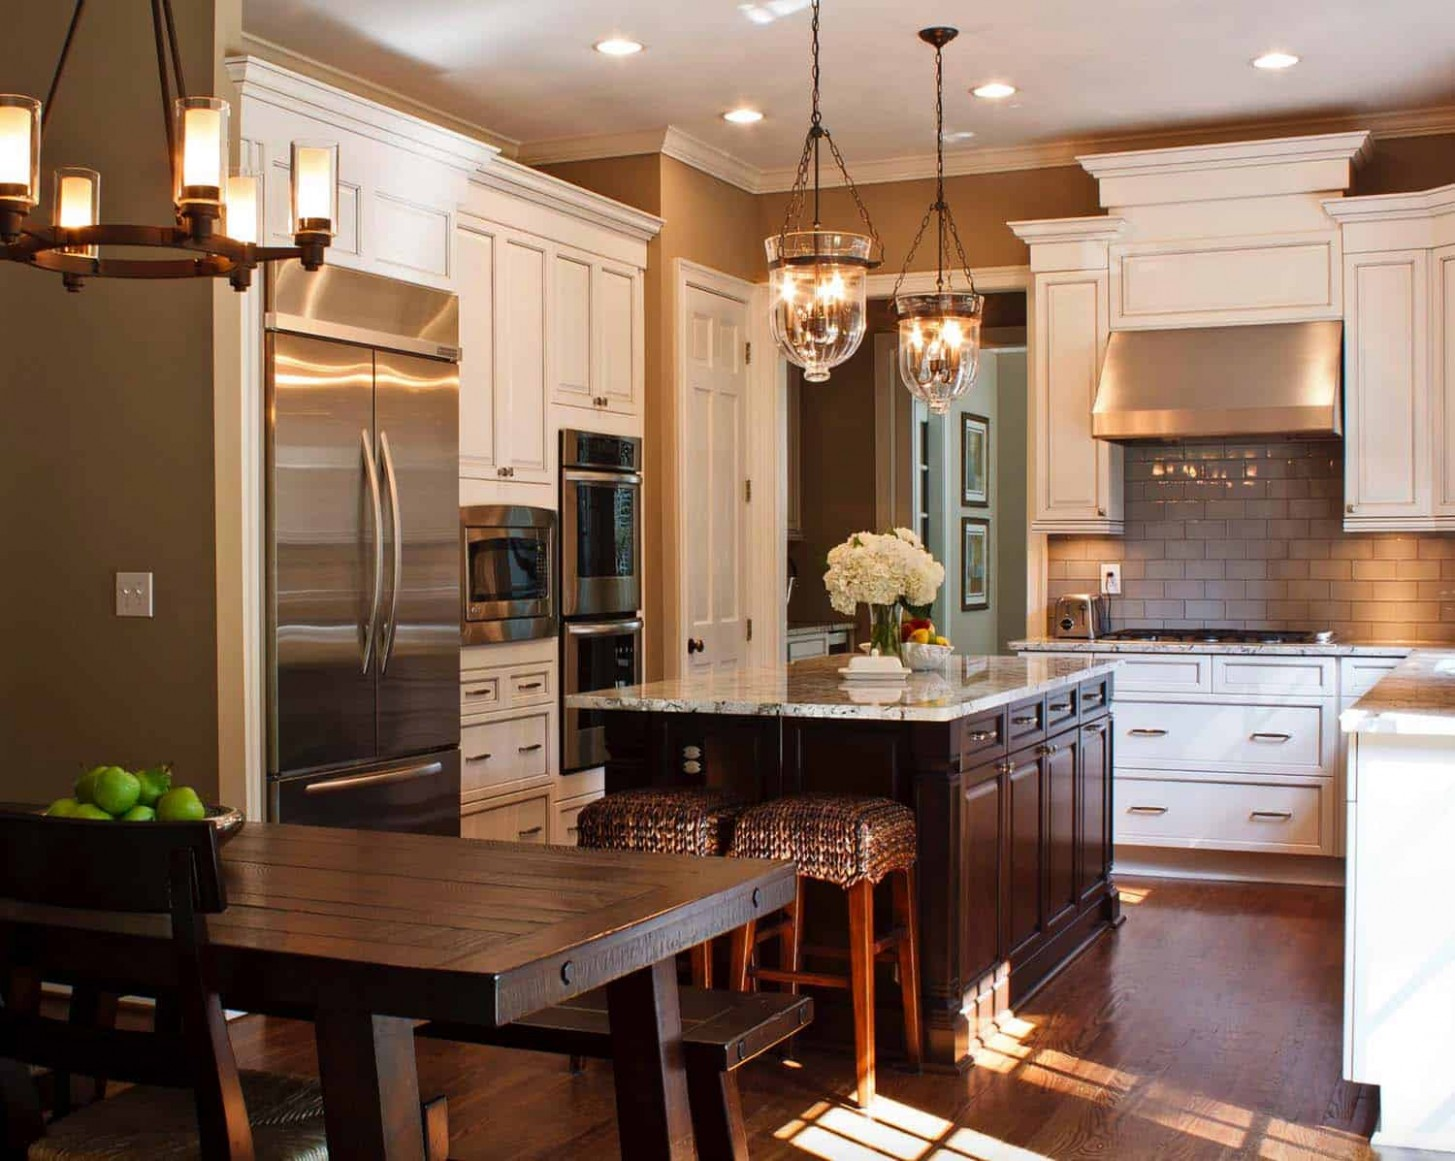 11 Stylish and elegant kitchens with light and dark contrasts - Titan Maple Glaze Kitchen Cabinets